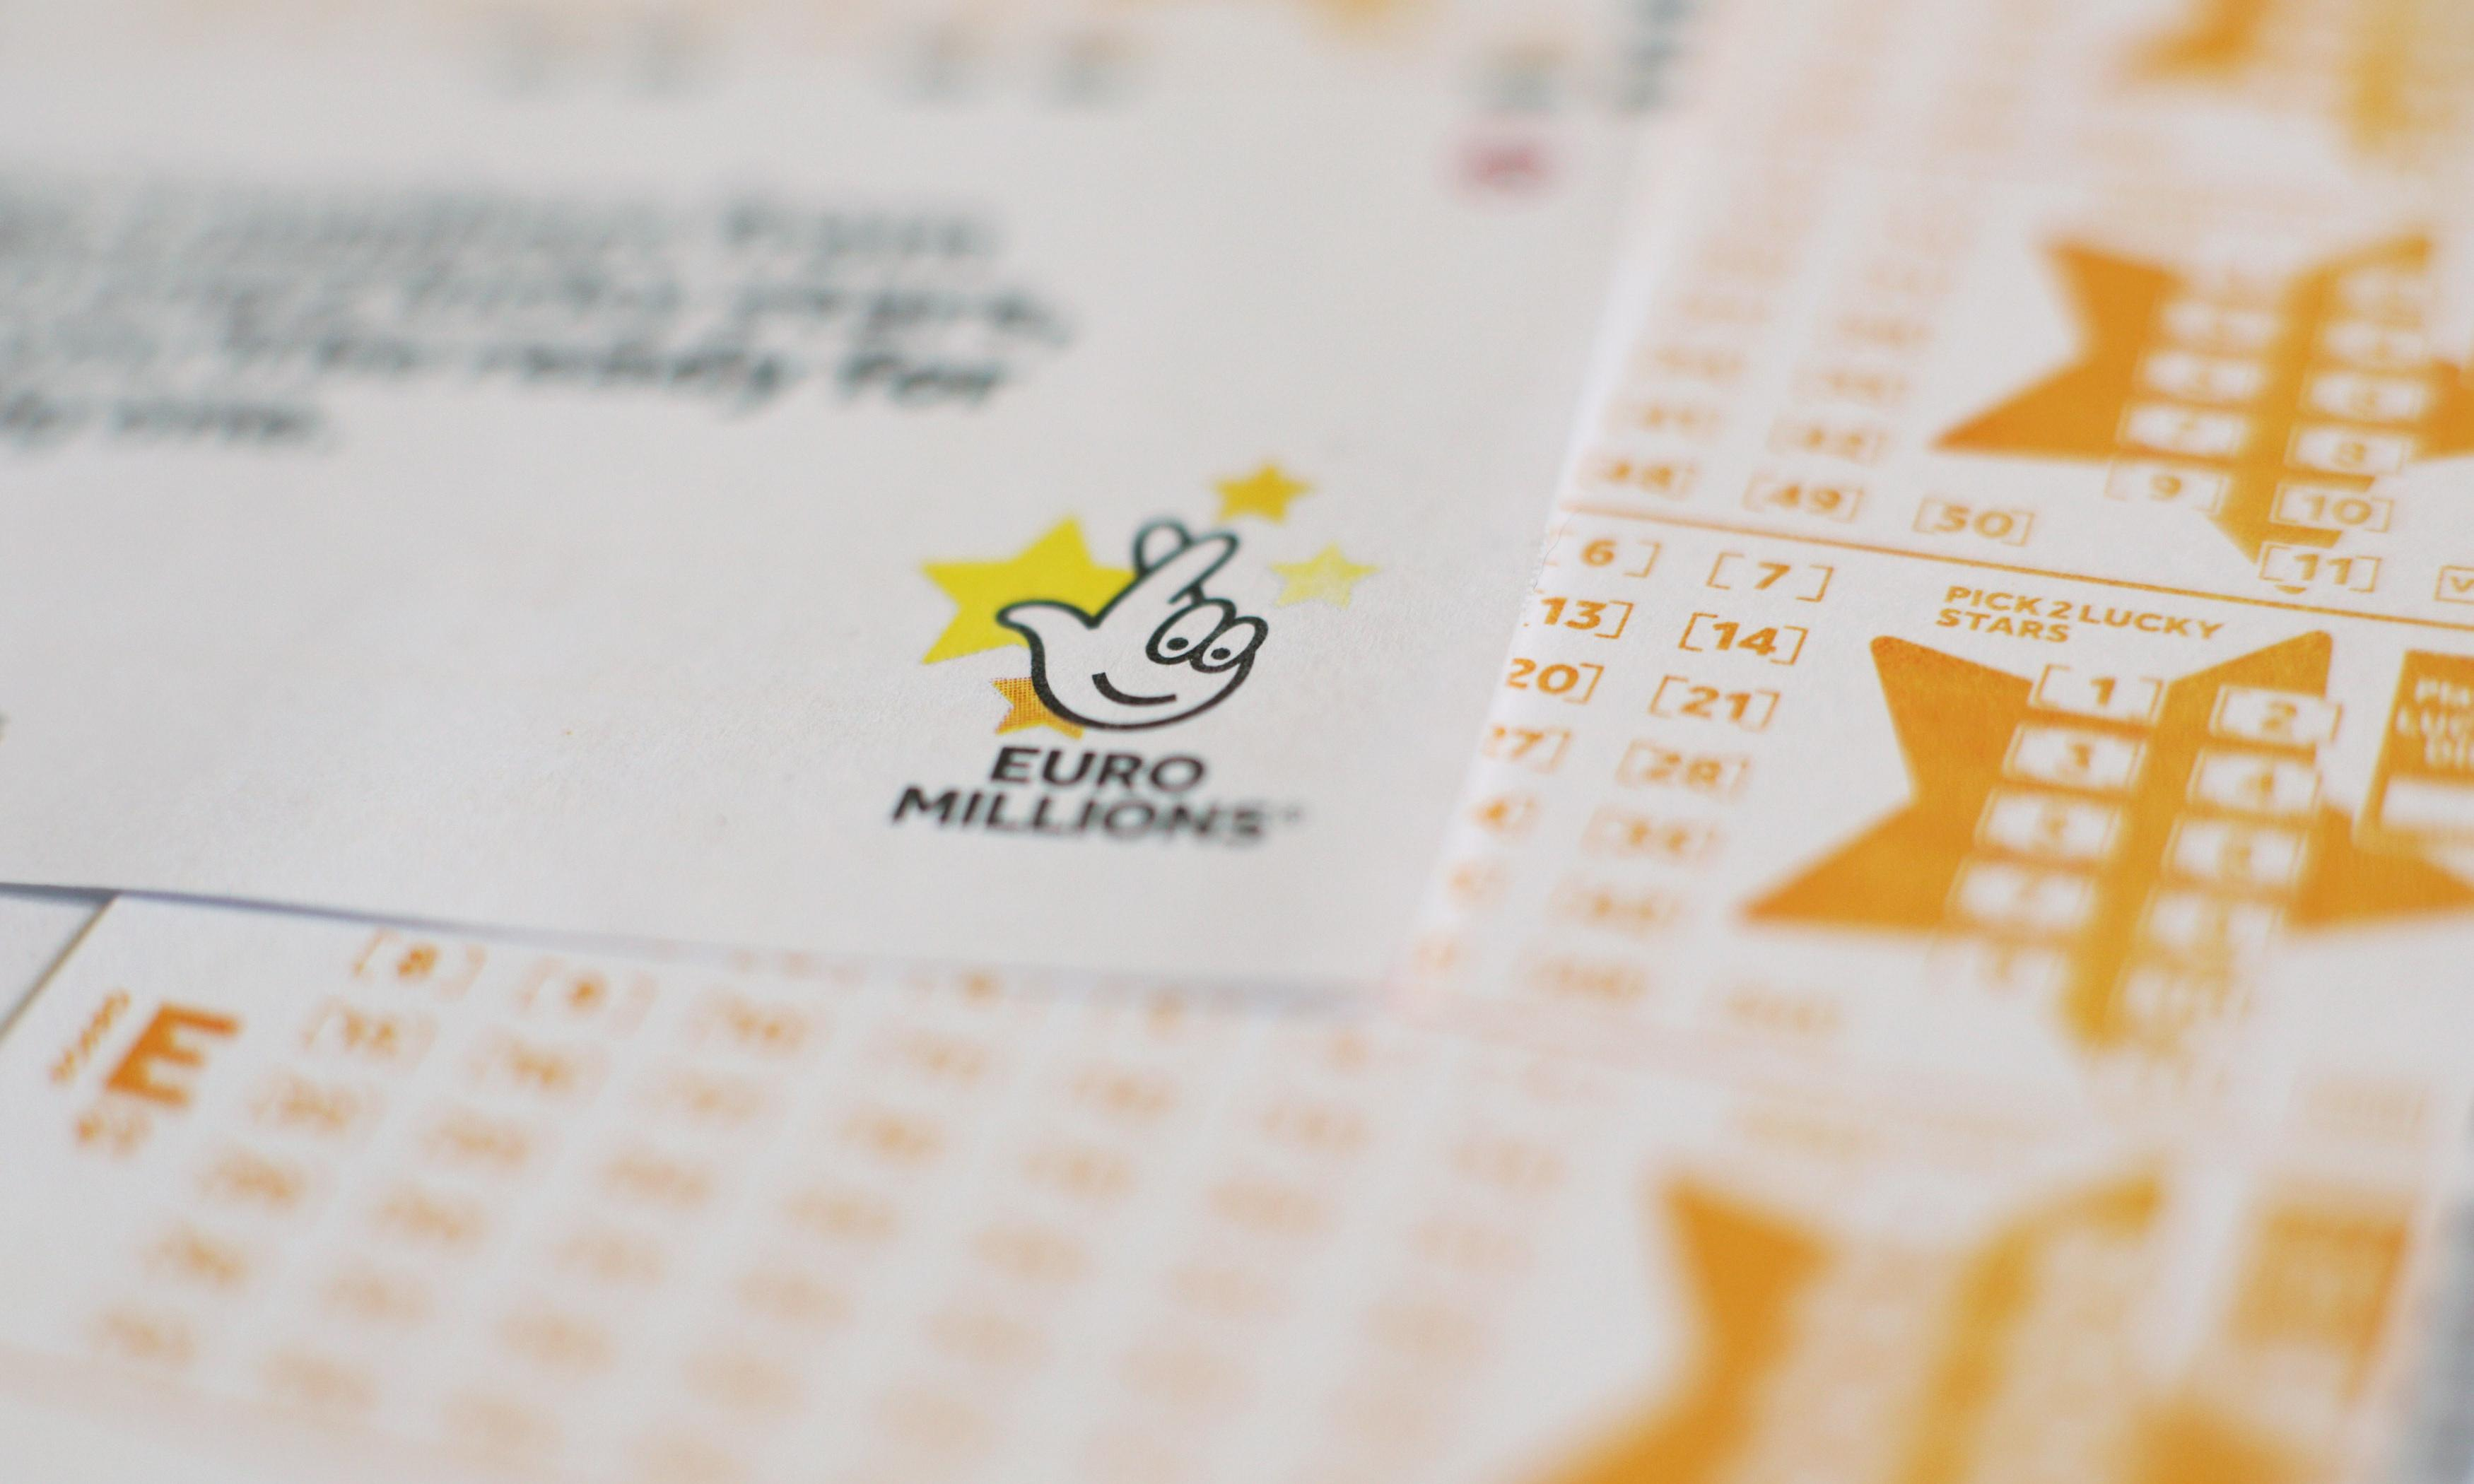 'Unbelievable': Irish family celebrate after record £152m lottery win